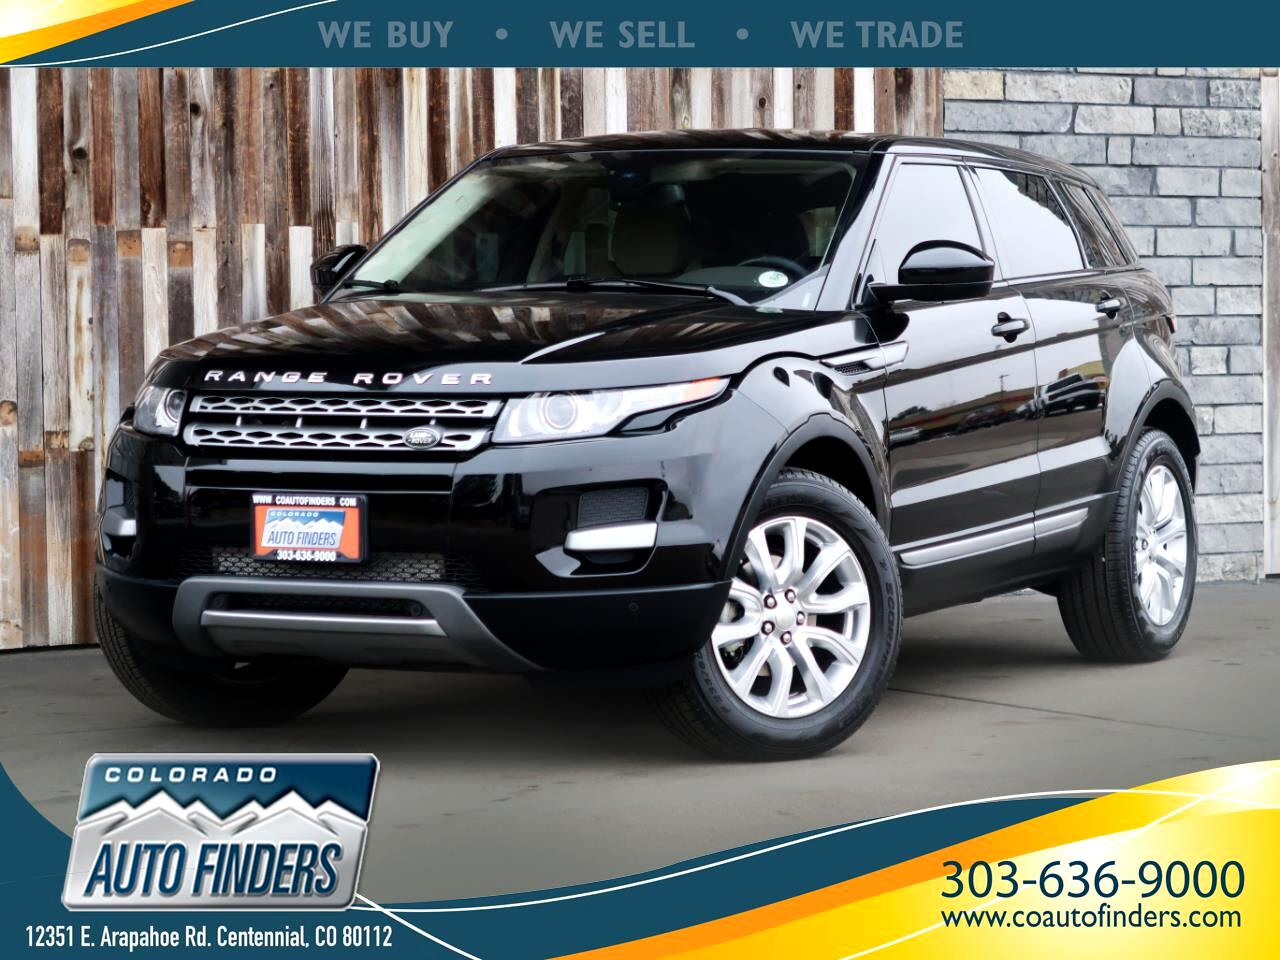 2014 Land Rover Range Rover Evoque 5dr HB Pure